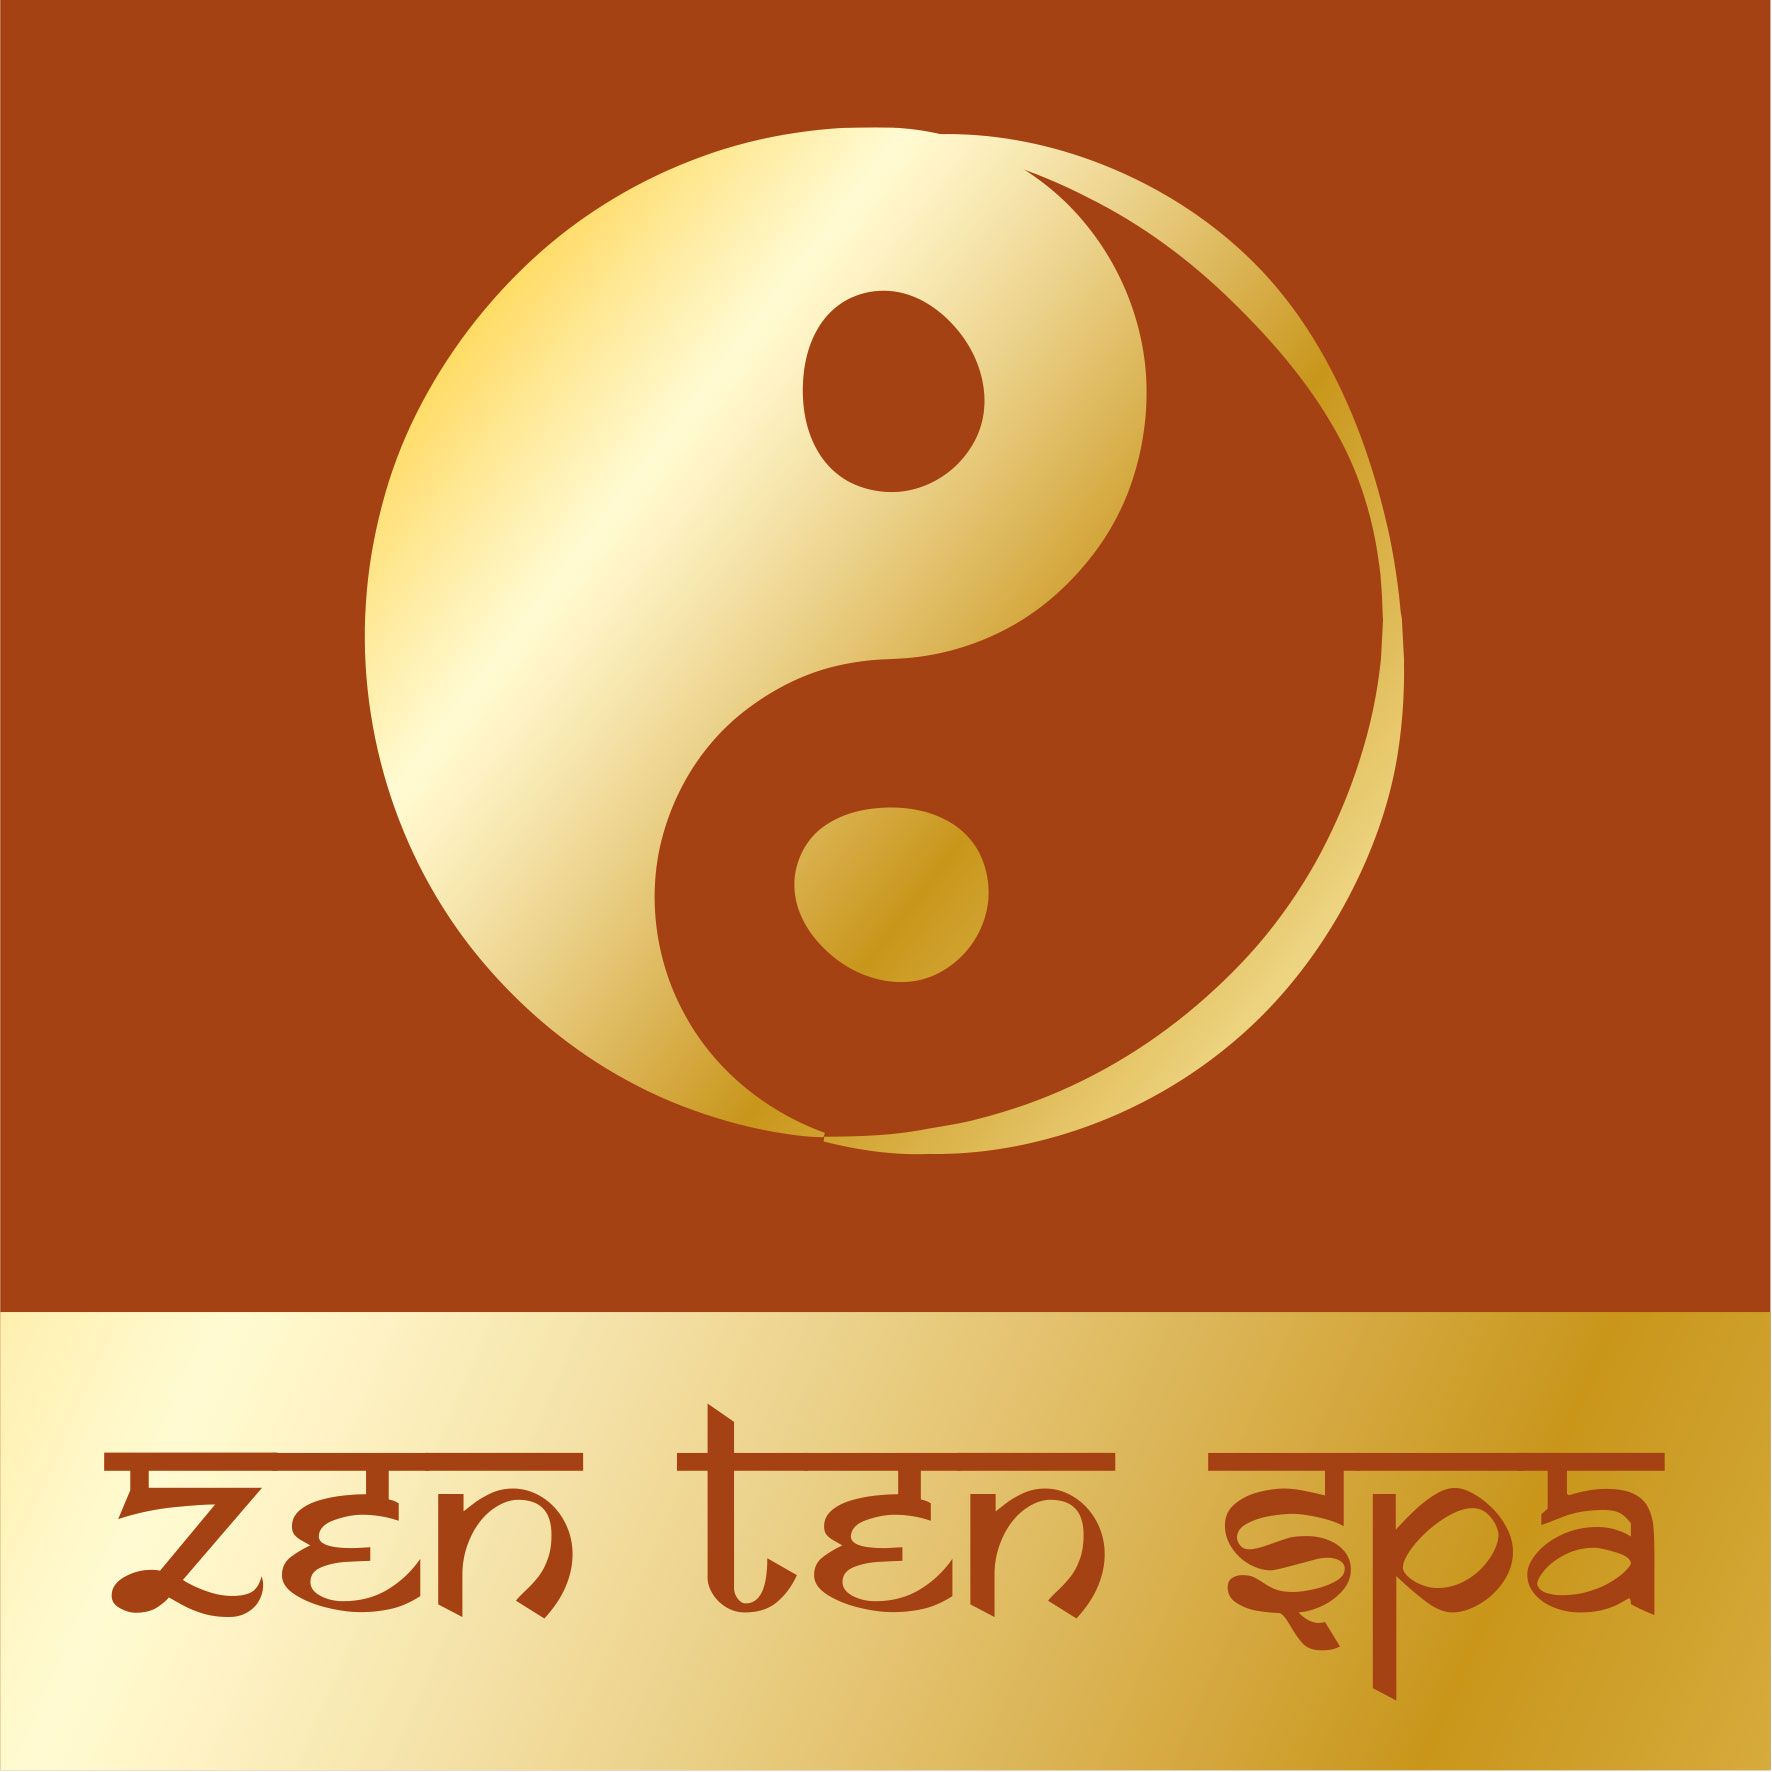 Zen Ten Spa Treatments